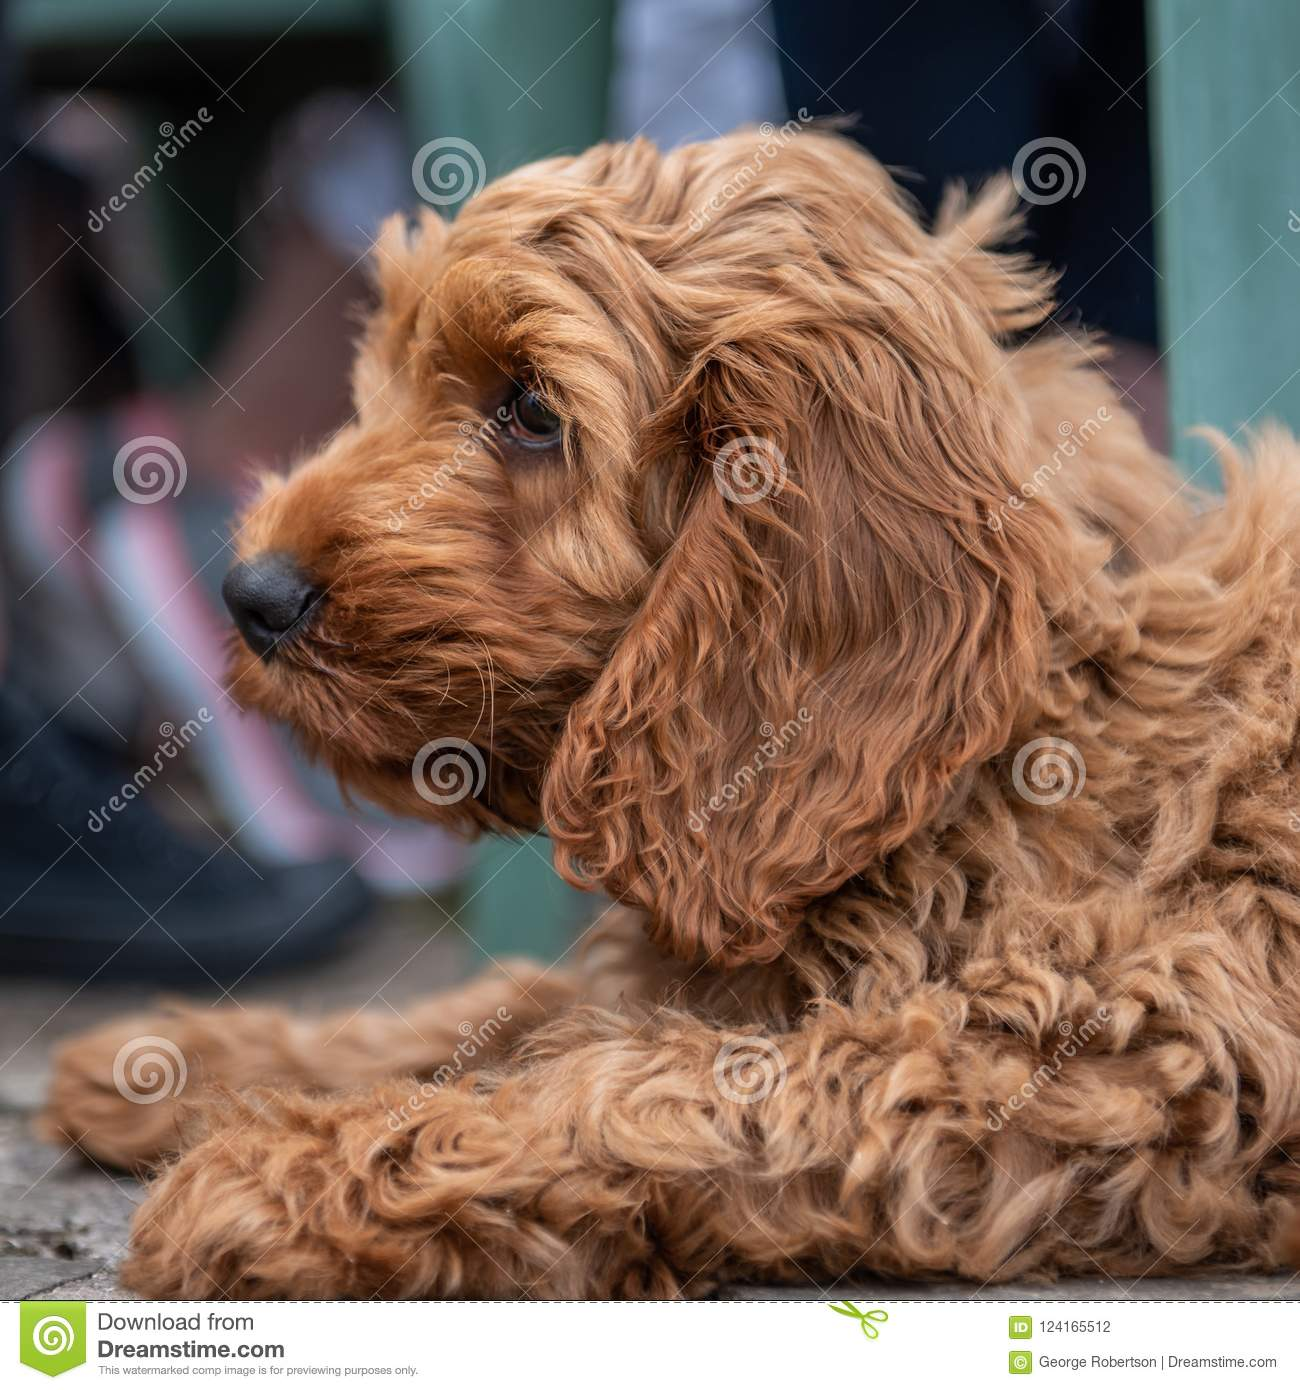 Red Cockapoo Puppy Lying Down In Garden Stock Photo Image Of Animal Adorable 124165512